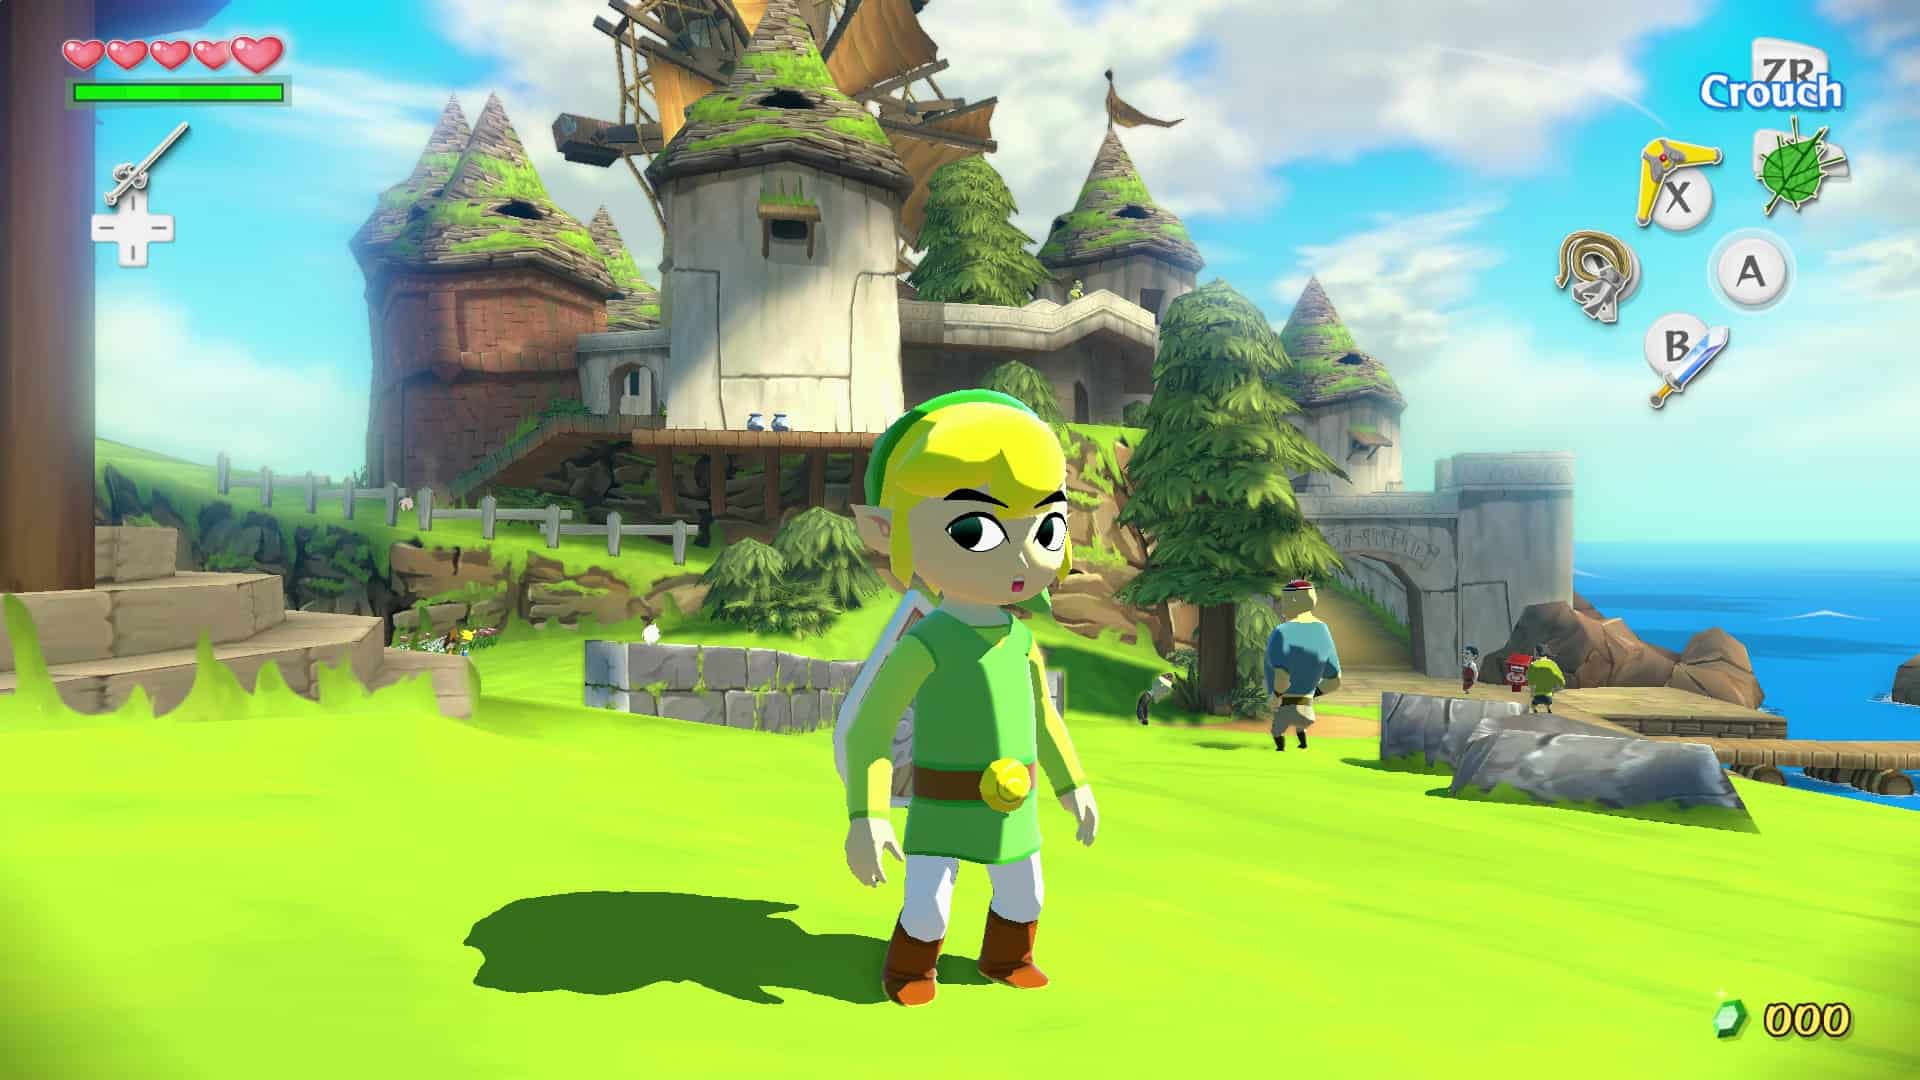 zelda_wind_waker_hd_pose